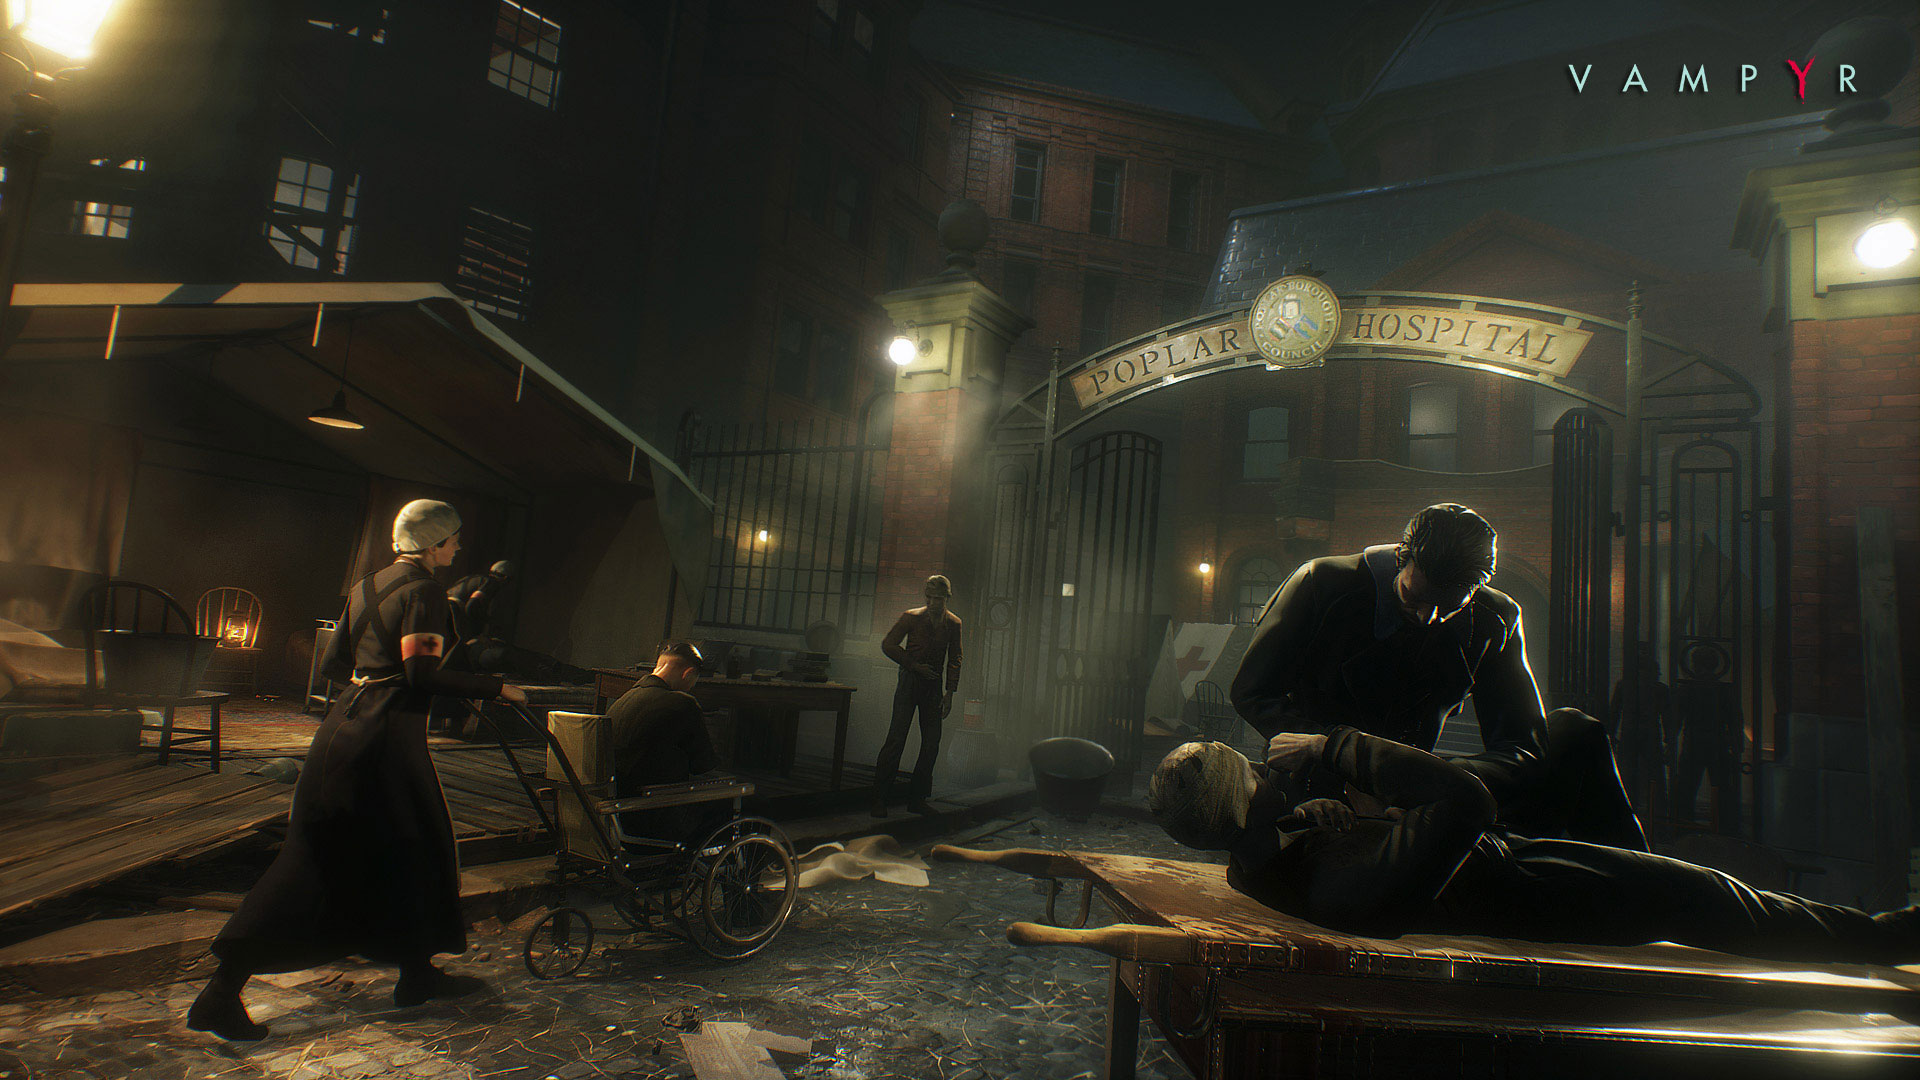 Vampyr Screenshots Look Incredible.